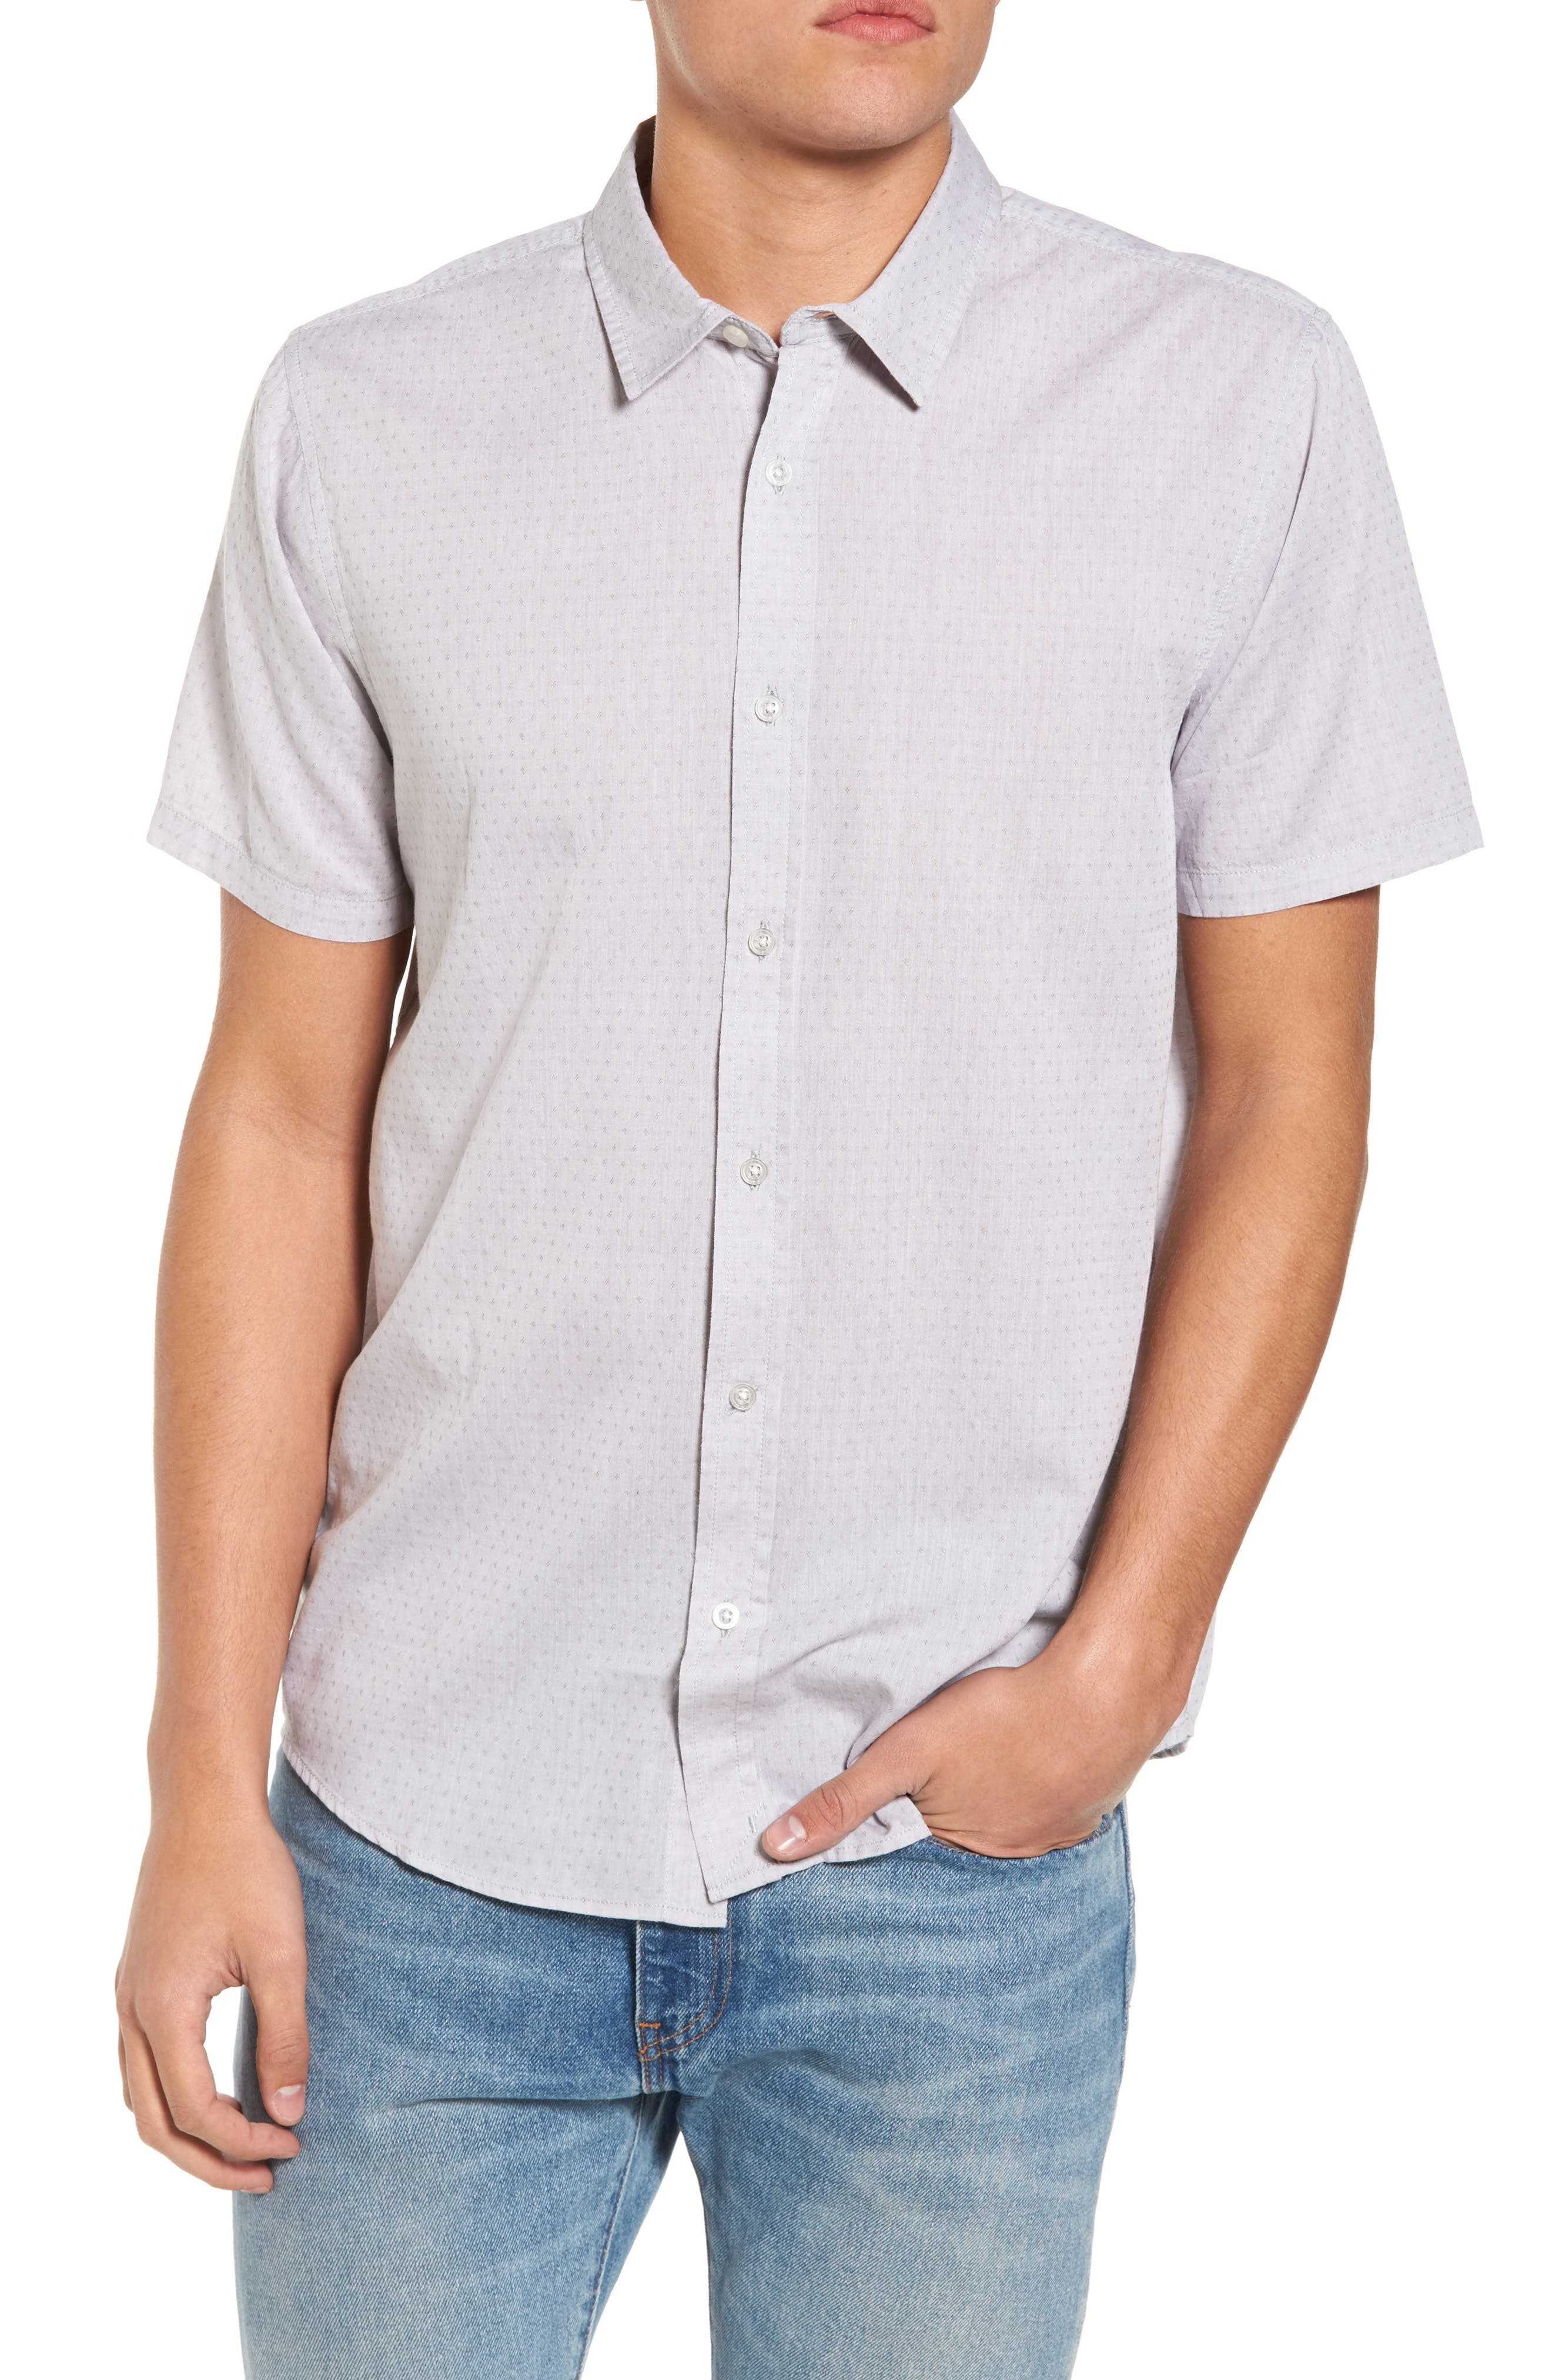 Clarke Woven Shirt,                         Main,                         color,